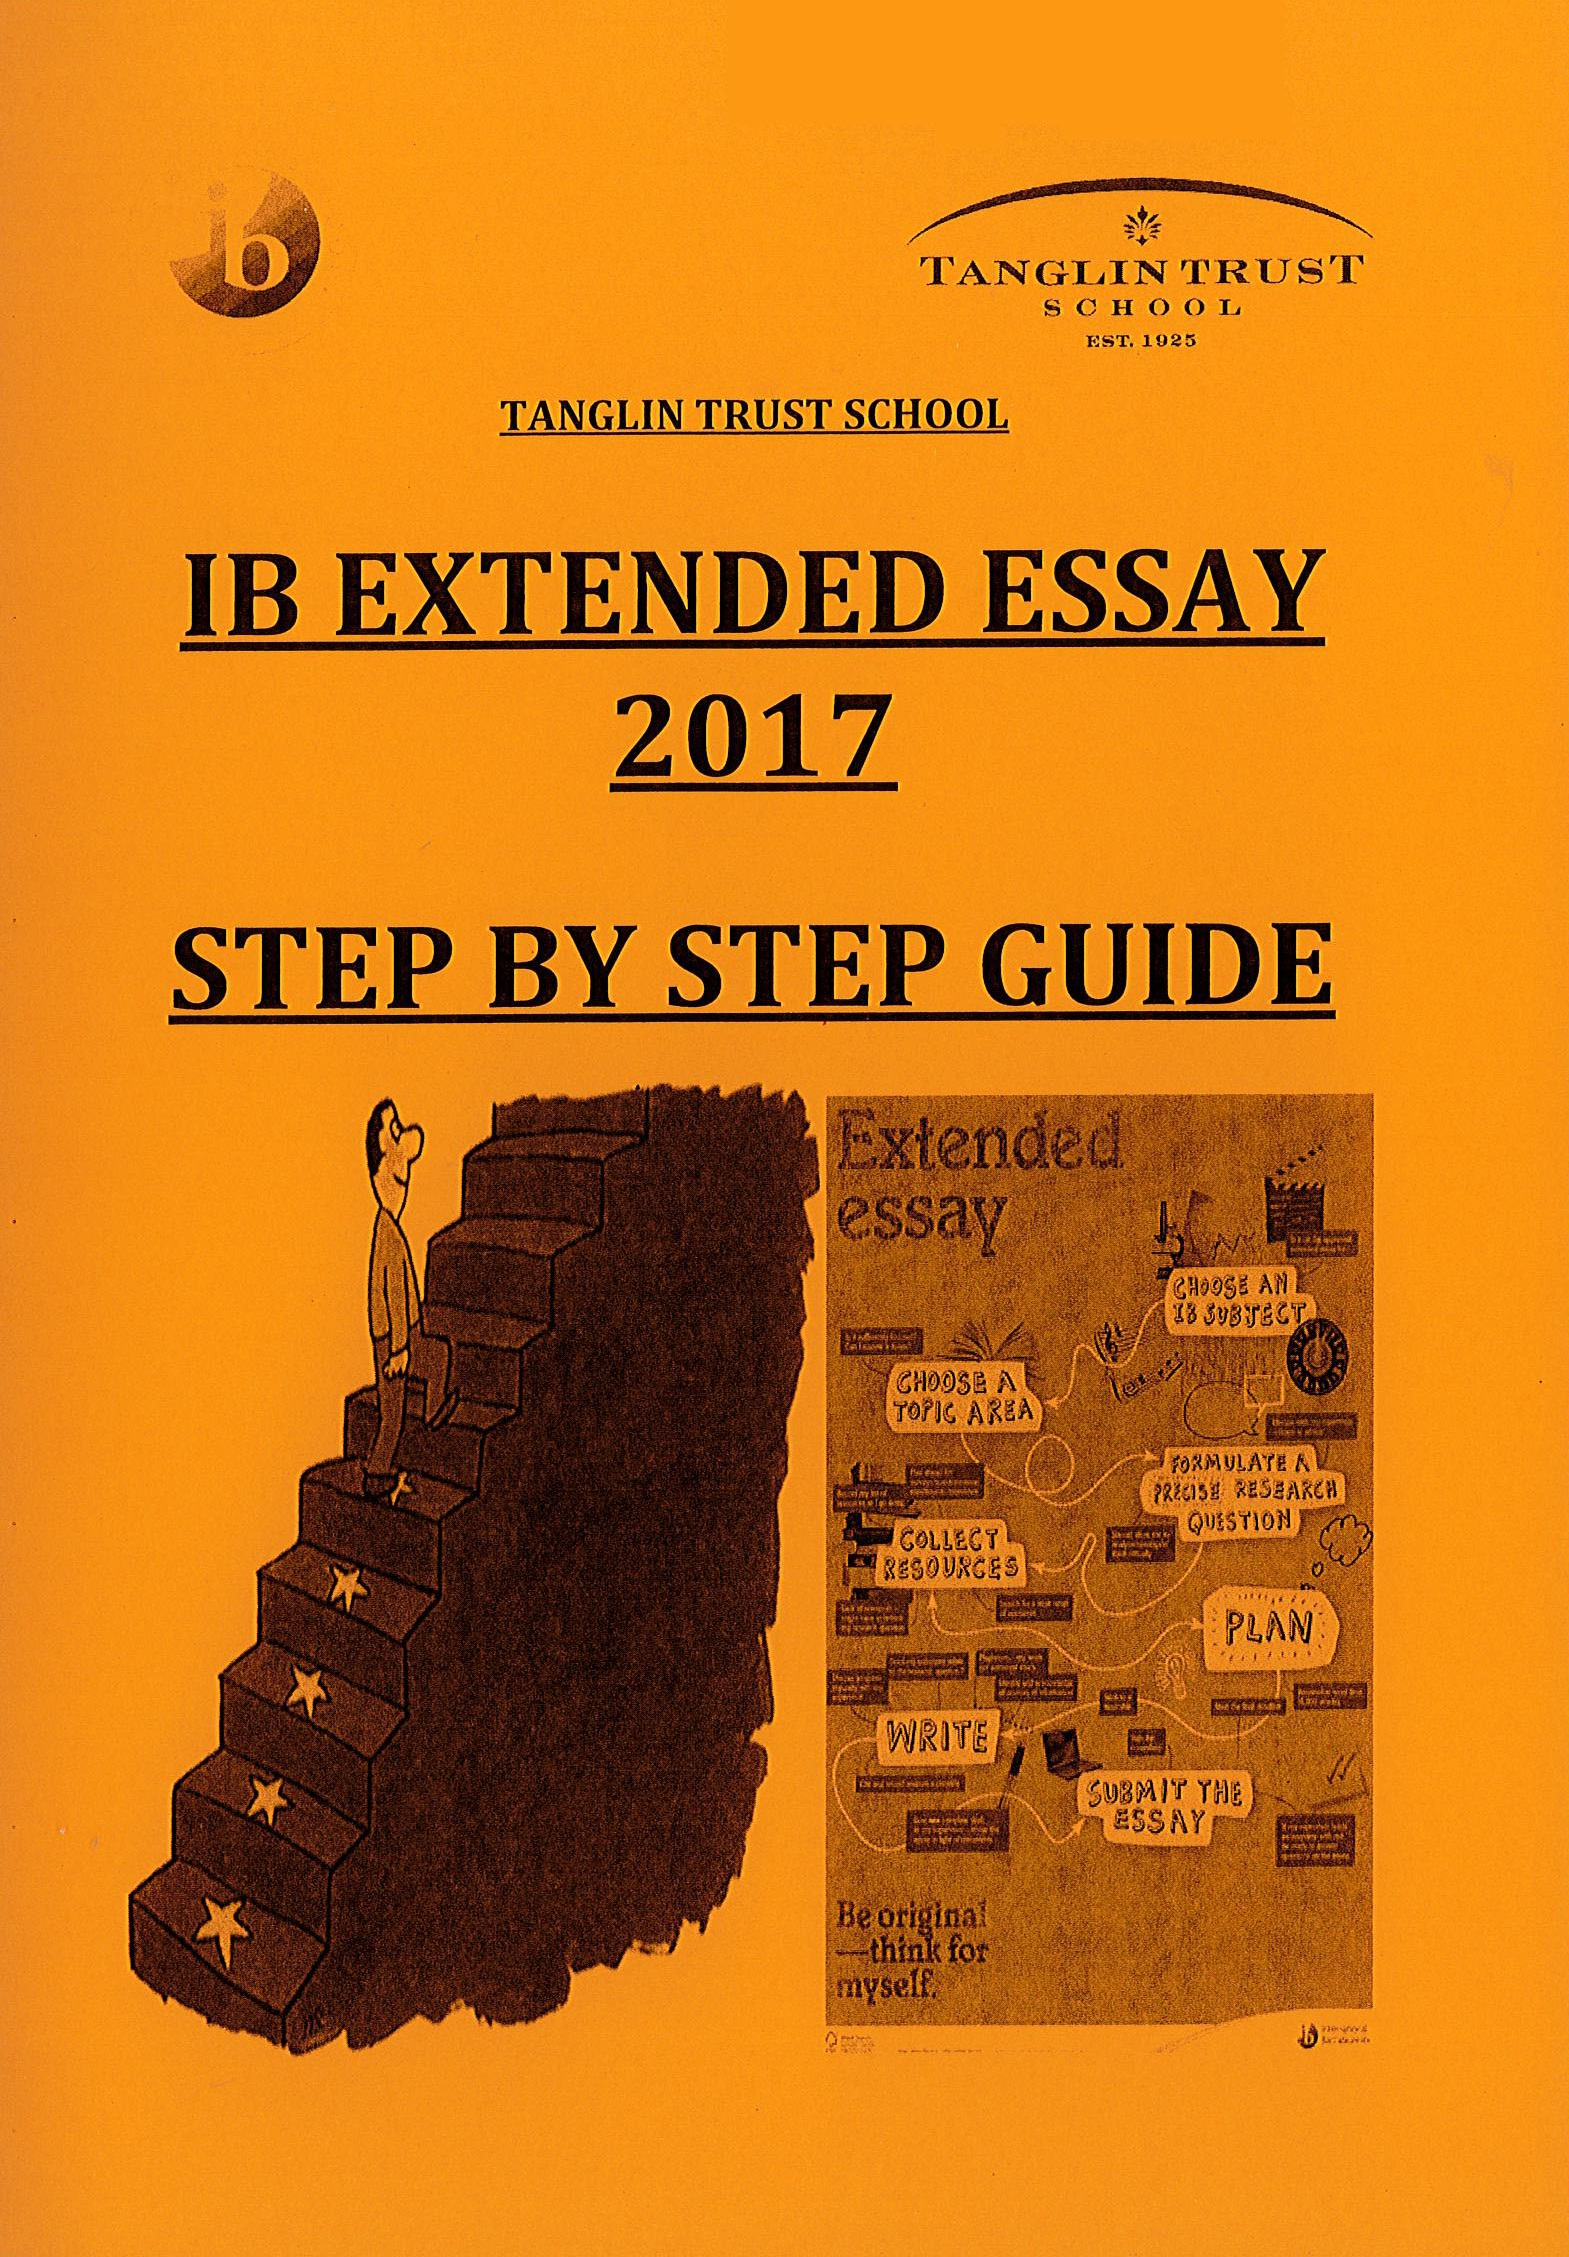 Extended Essay Writings and IB Extended Essay Writing